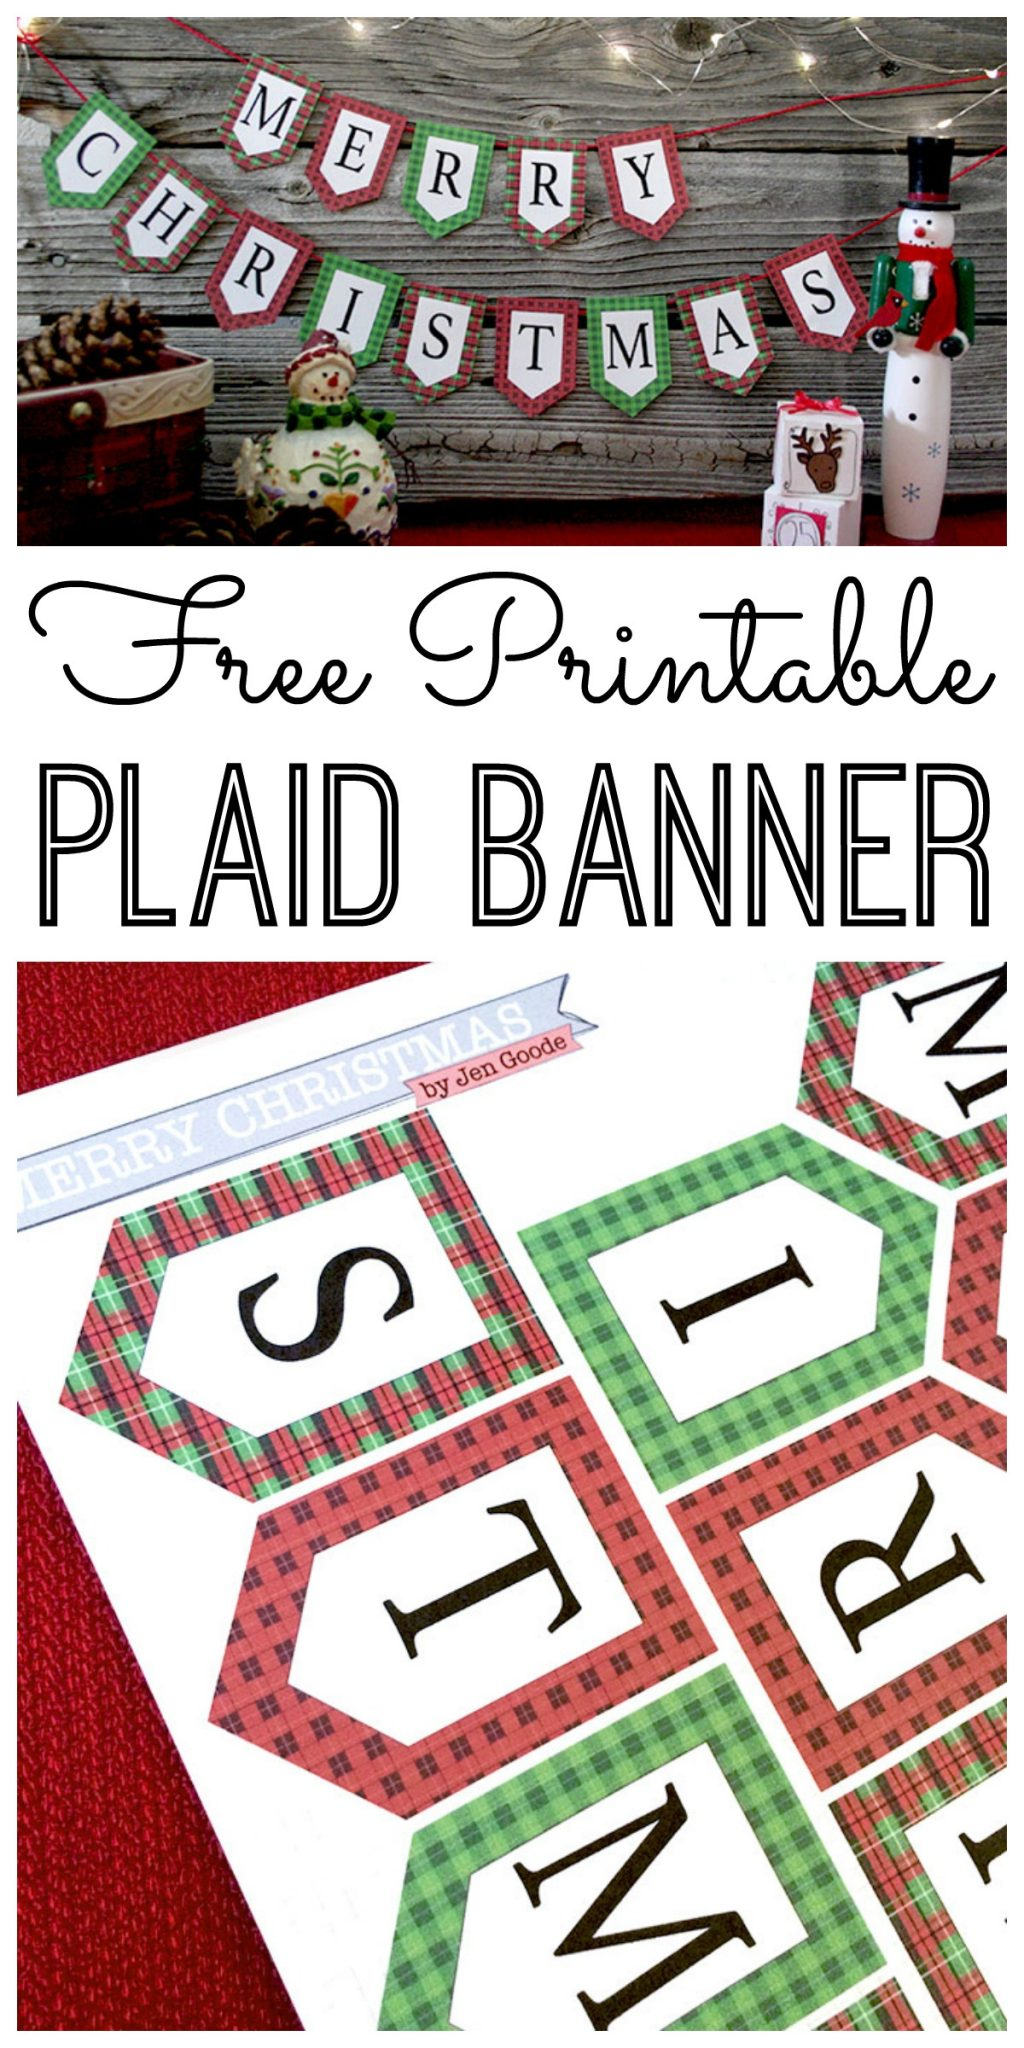 Old Fashioned image with regard to printable christmas banner